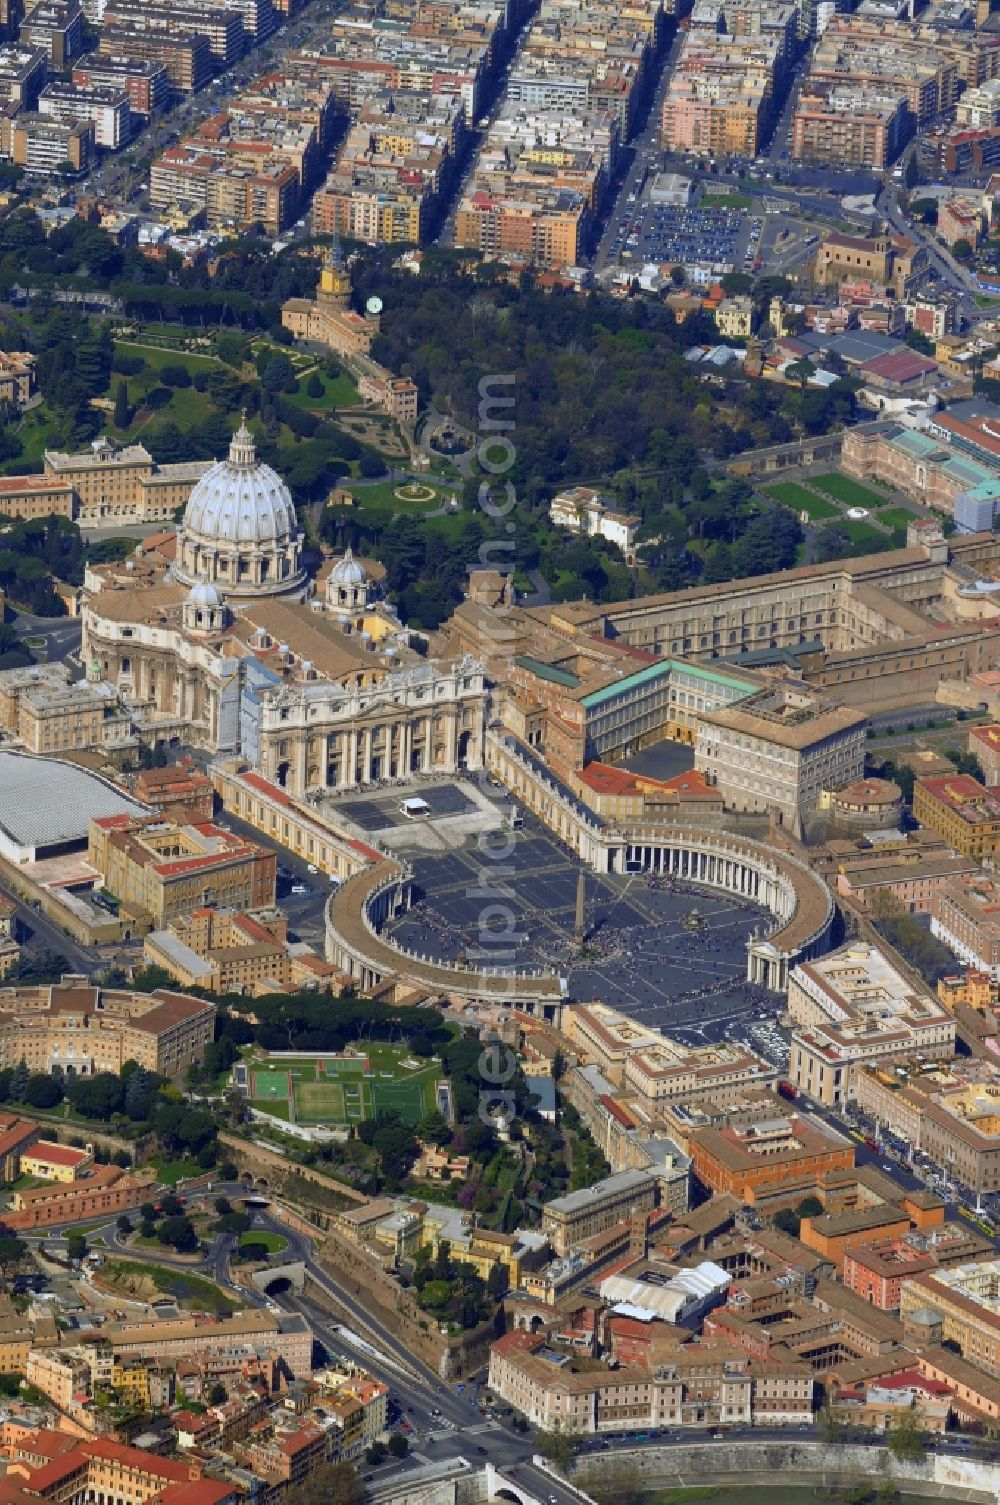 Vatican In Vatican City With St